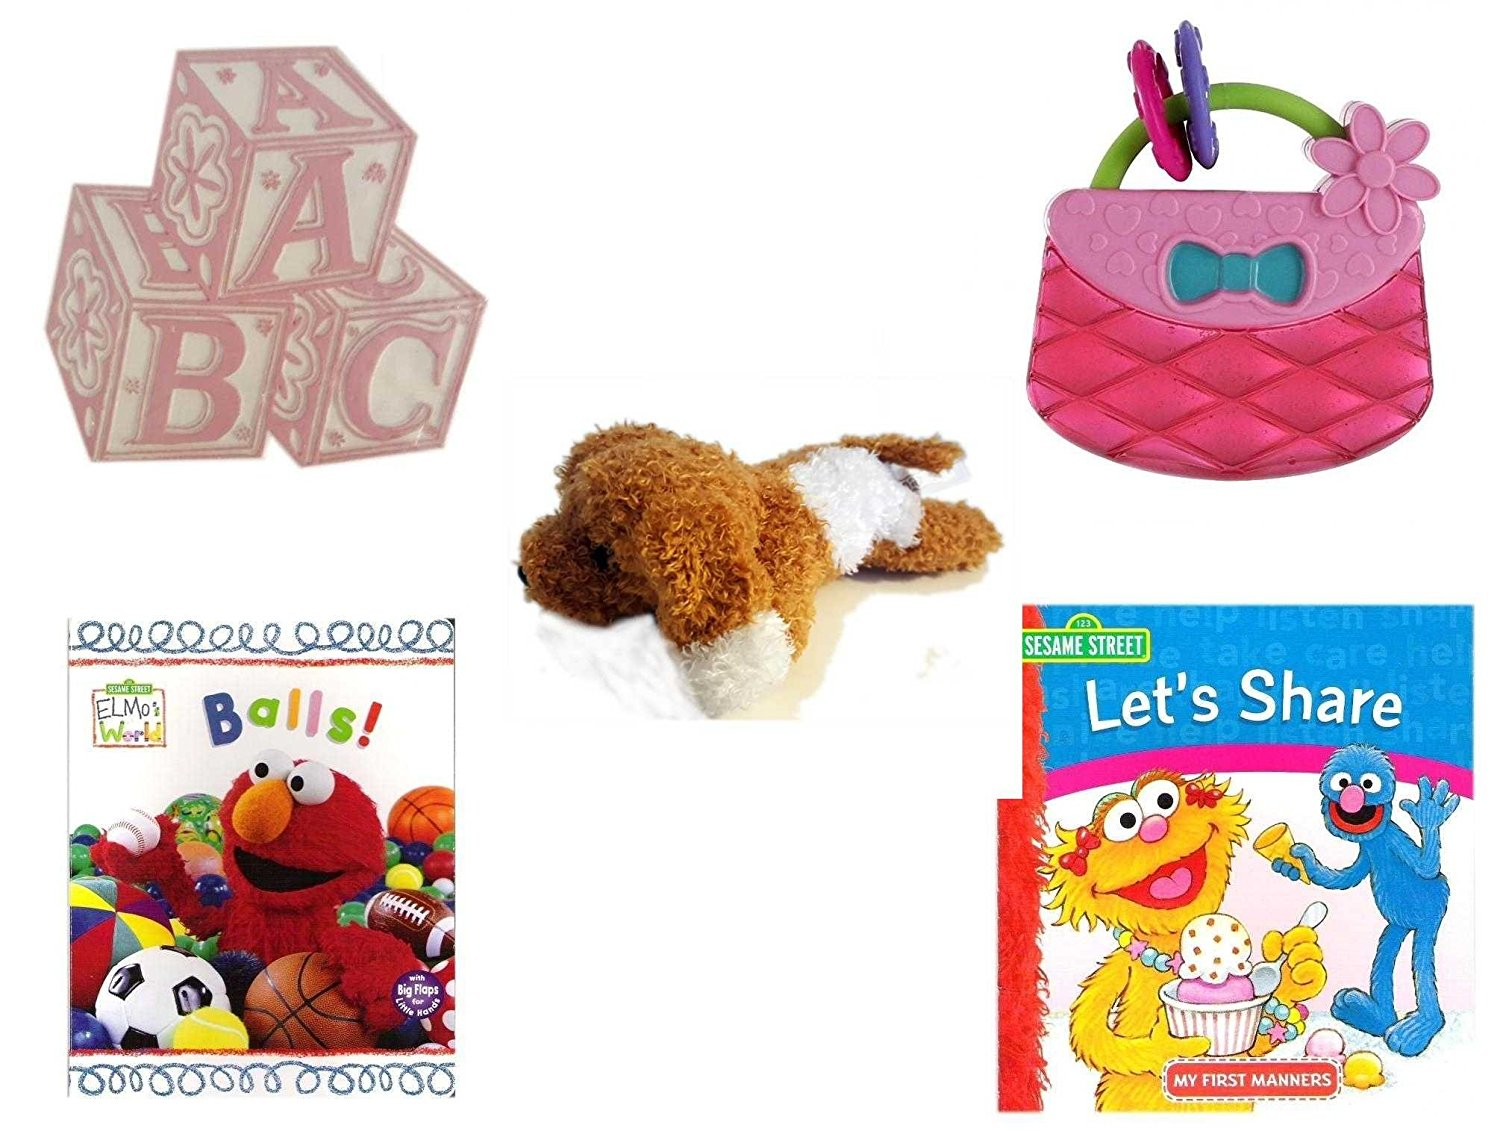 Children's Gift Bundle - Ages 0-2 [5 Piece] - ABC Baby Blocks Cake Topper Pink Girl - Bright Starts Pretty in Pink Carry Teethe Purse - Amazimals Brown & White Puppy - Elmo's World First Flap-Book -